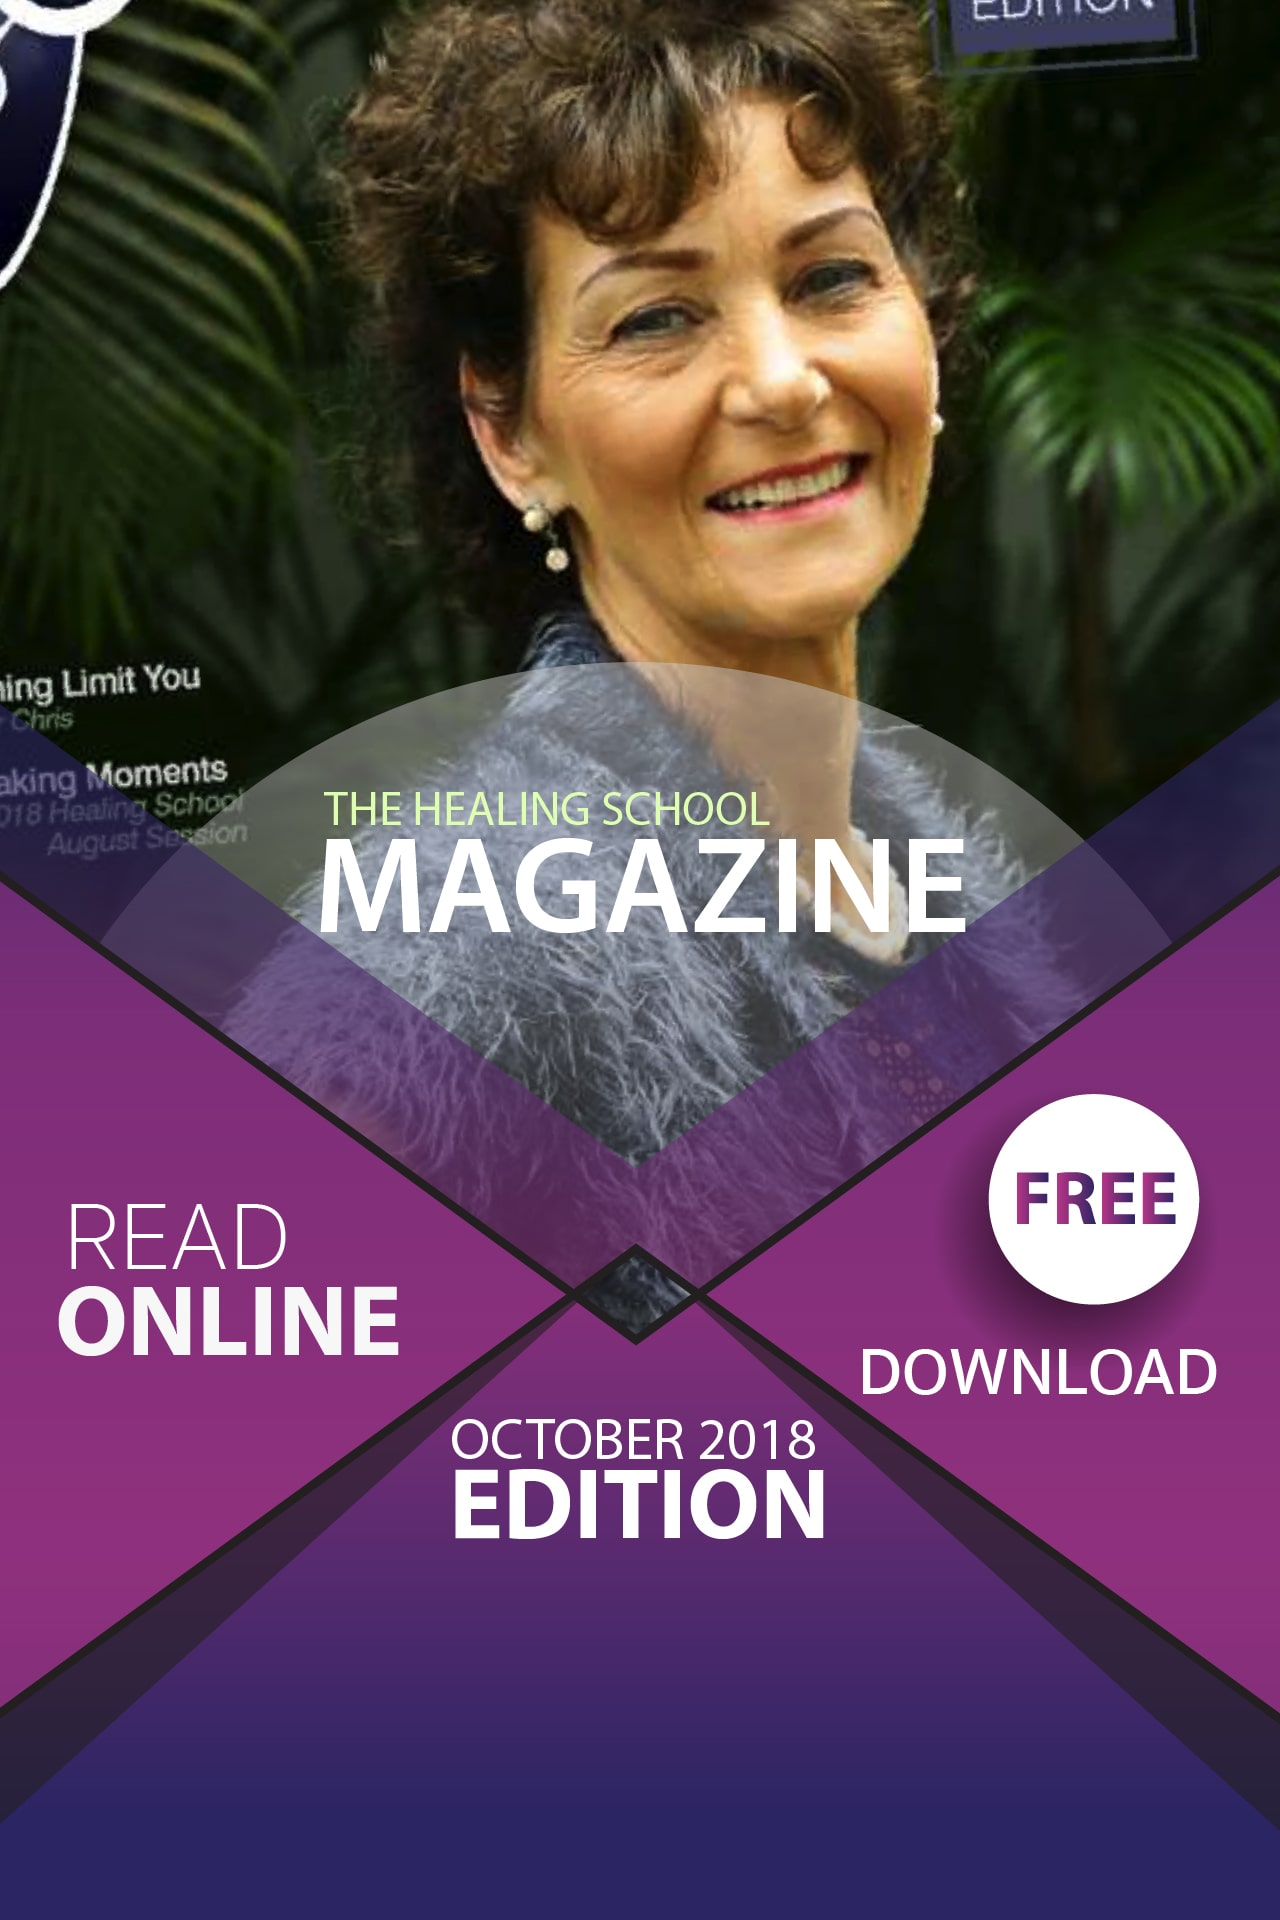 The Healing School Magazine - October 2018 Edition